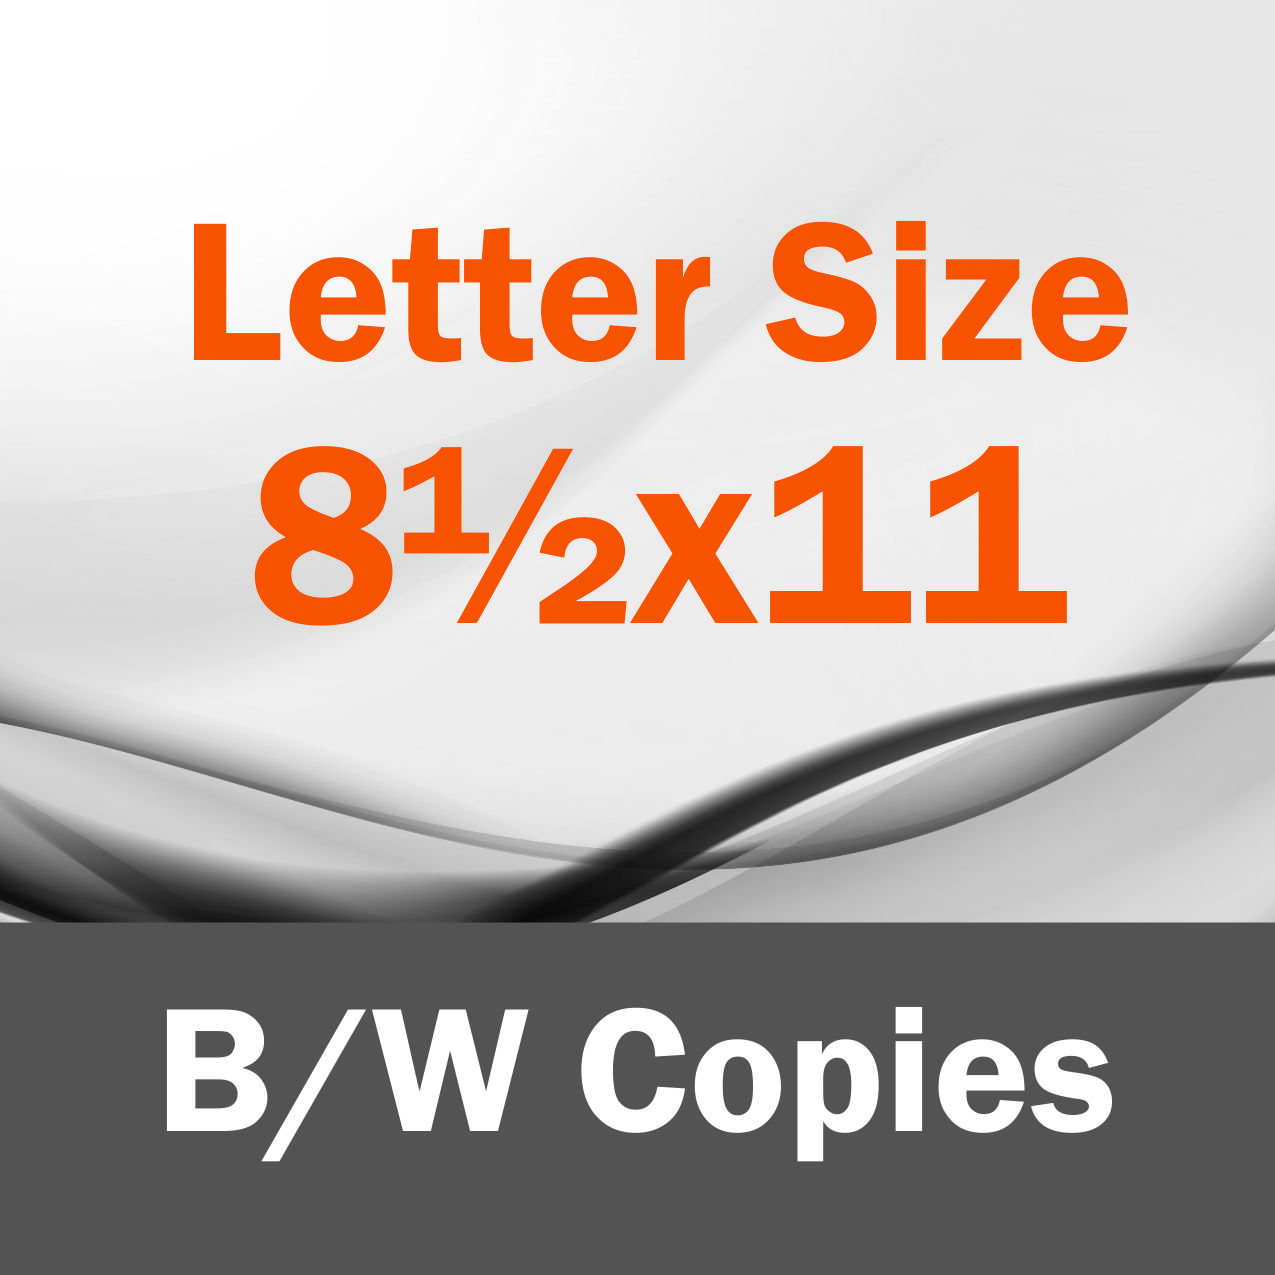 black and white copies letter size 2